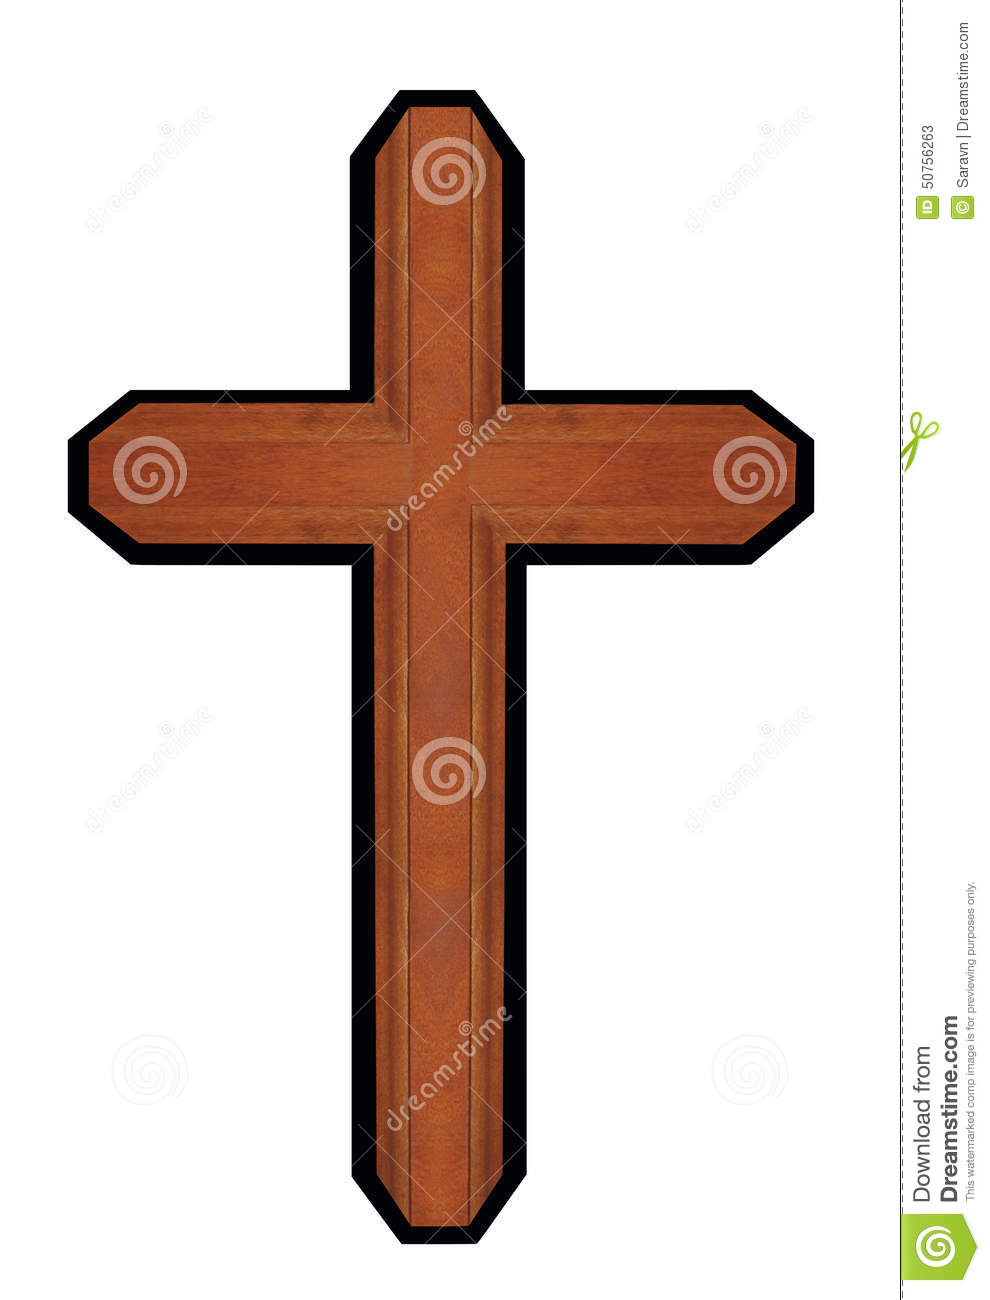 Isolated brown wooden ornate walnut cross christian symbol of royalty free stock photo buycottarizona Images